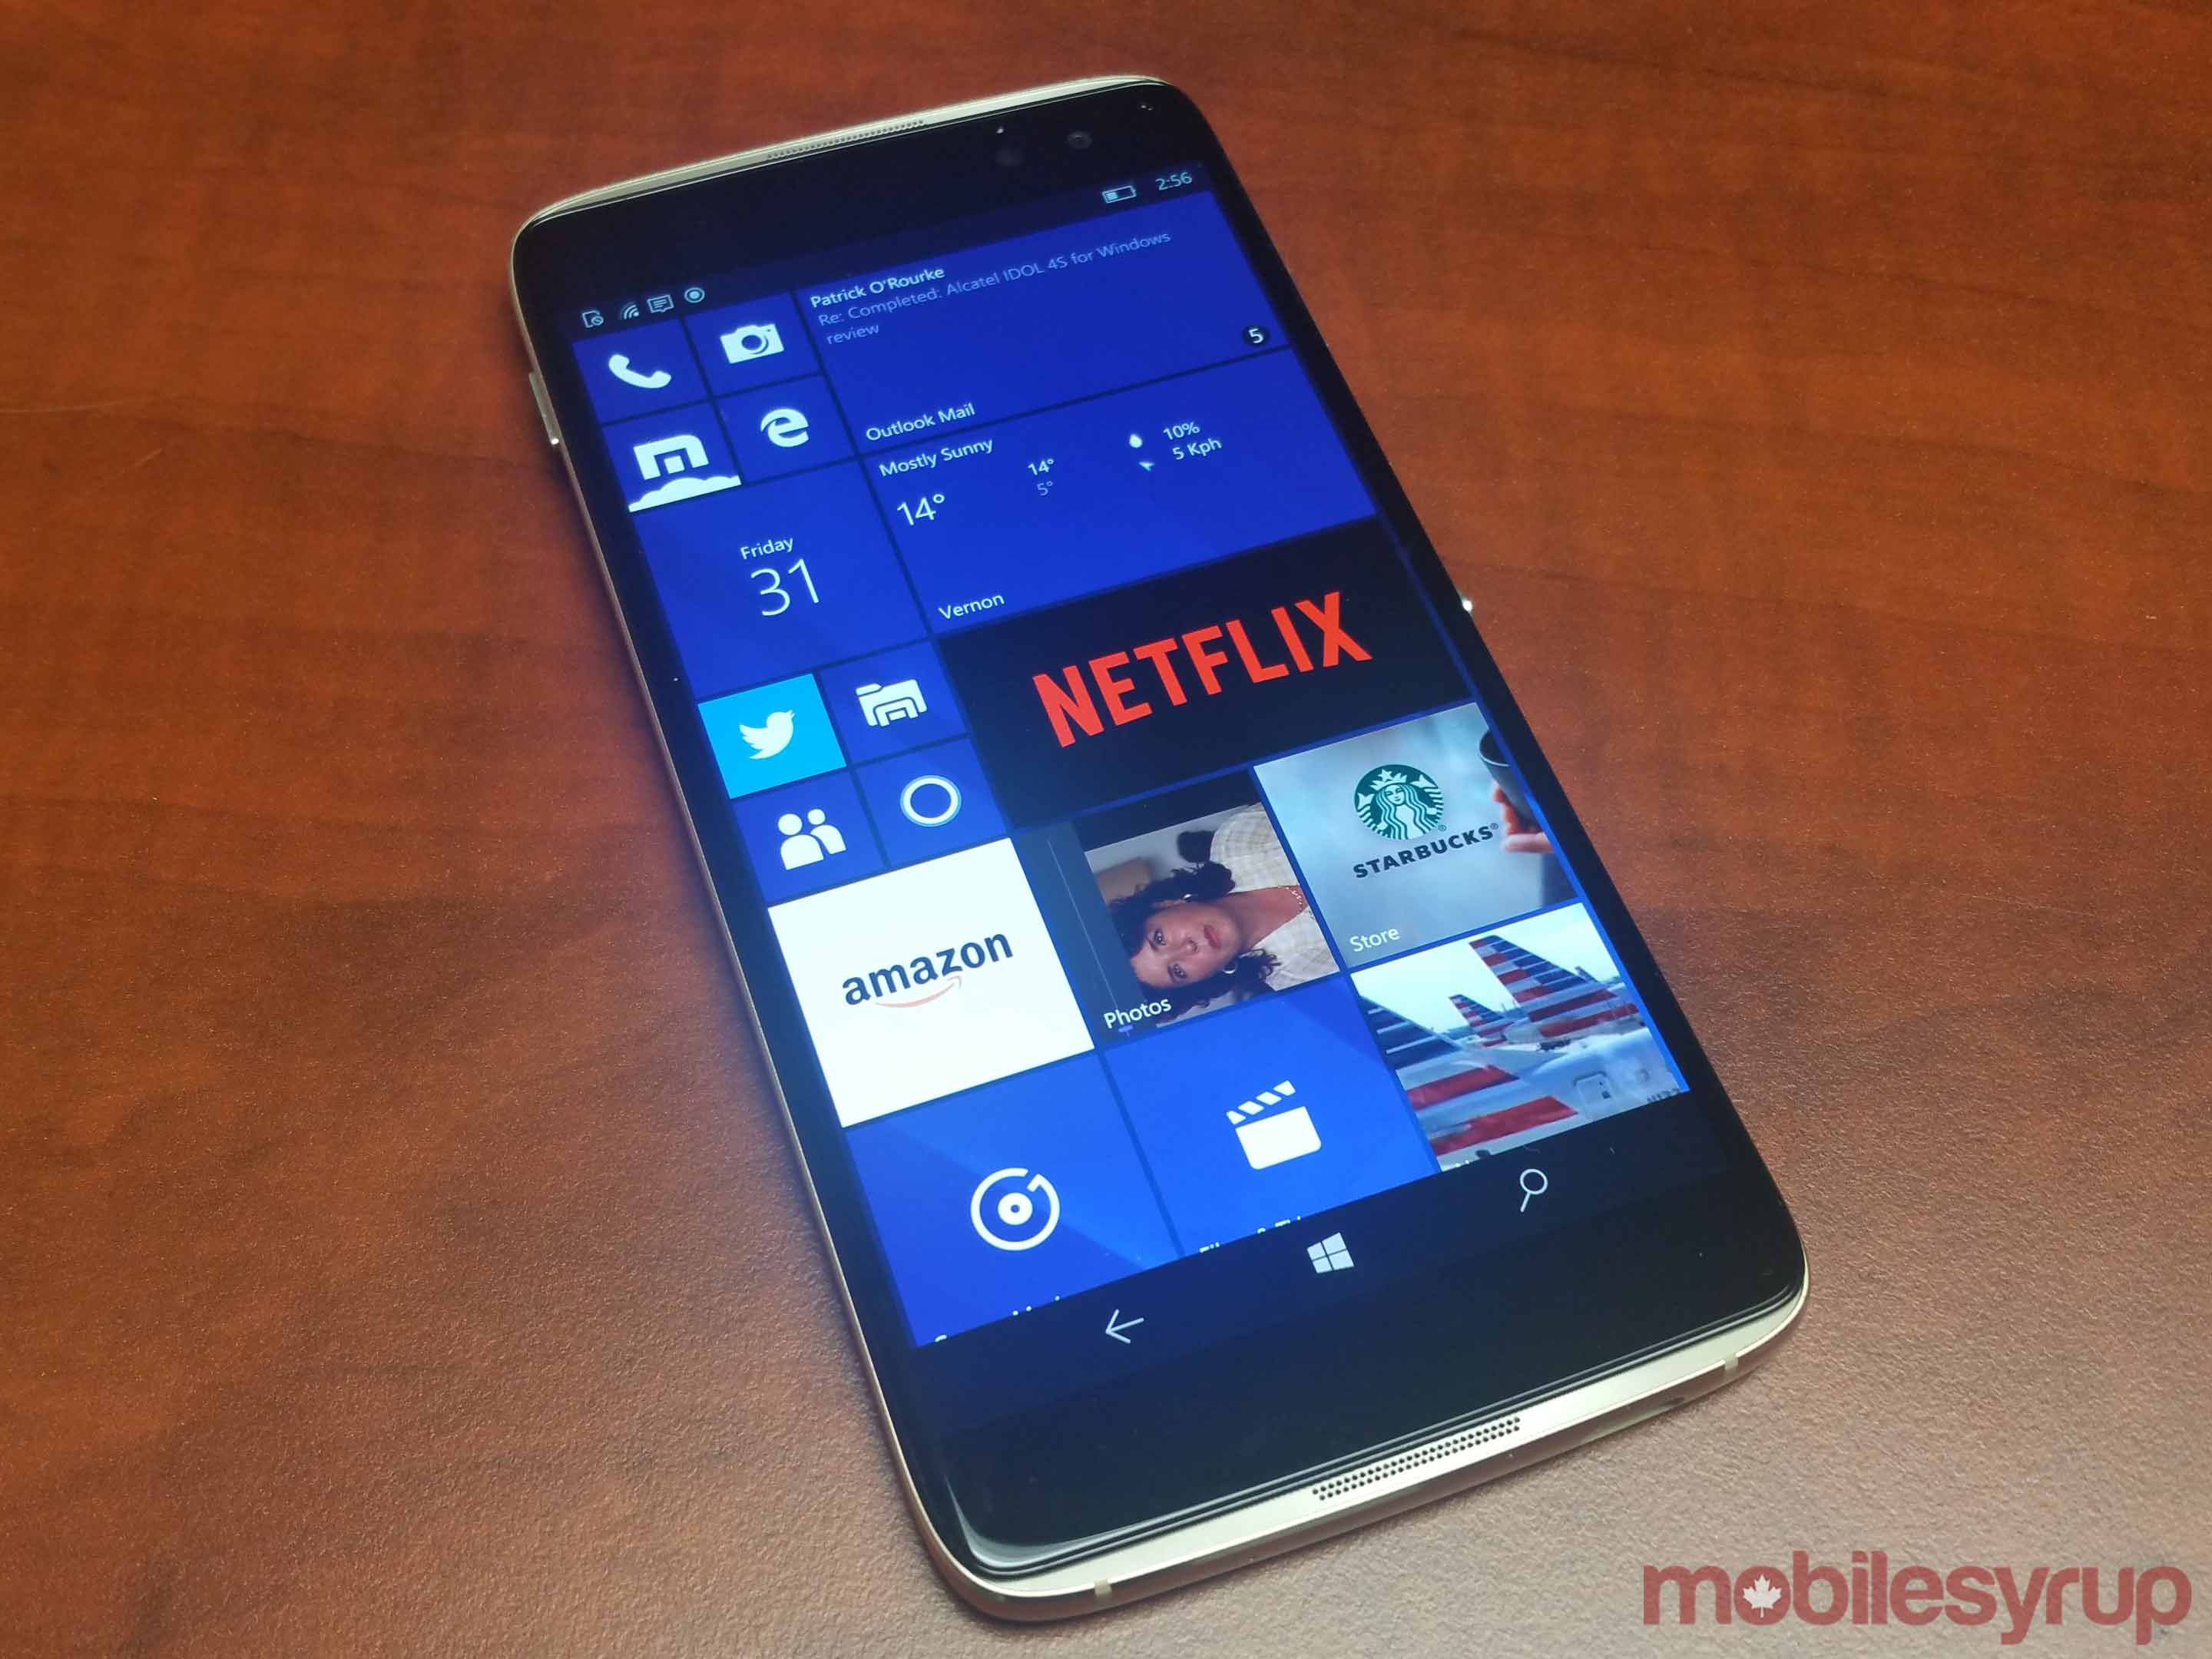 Alcatel Idol 4S windows phone main view